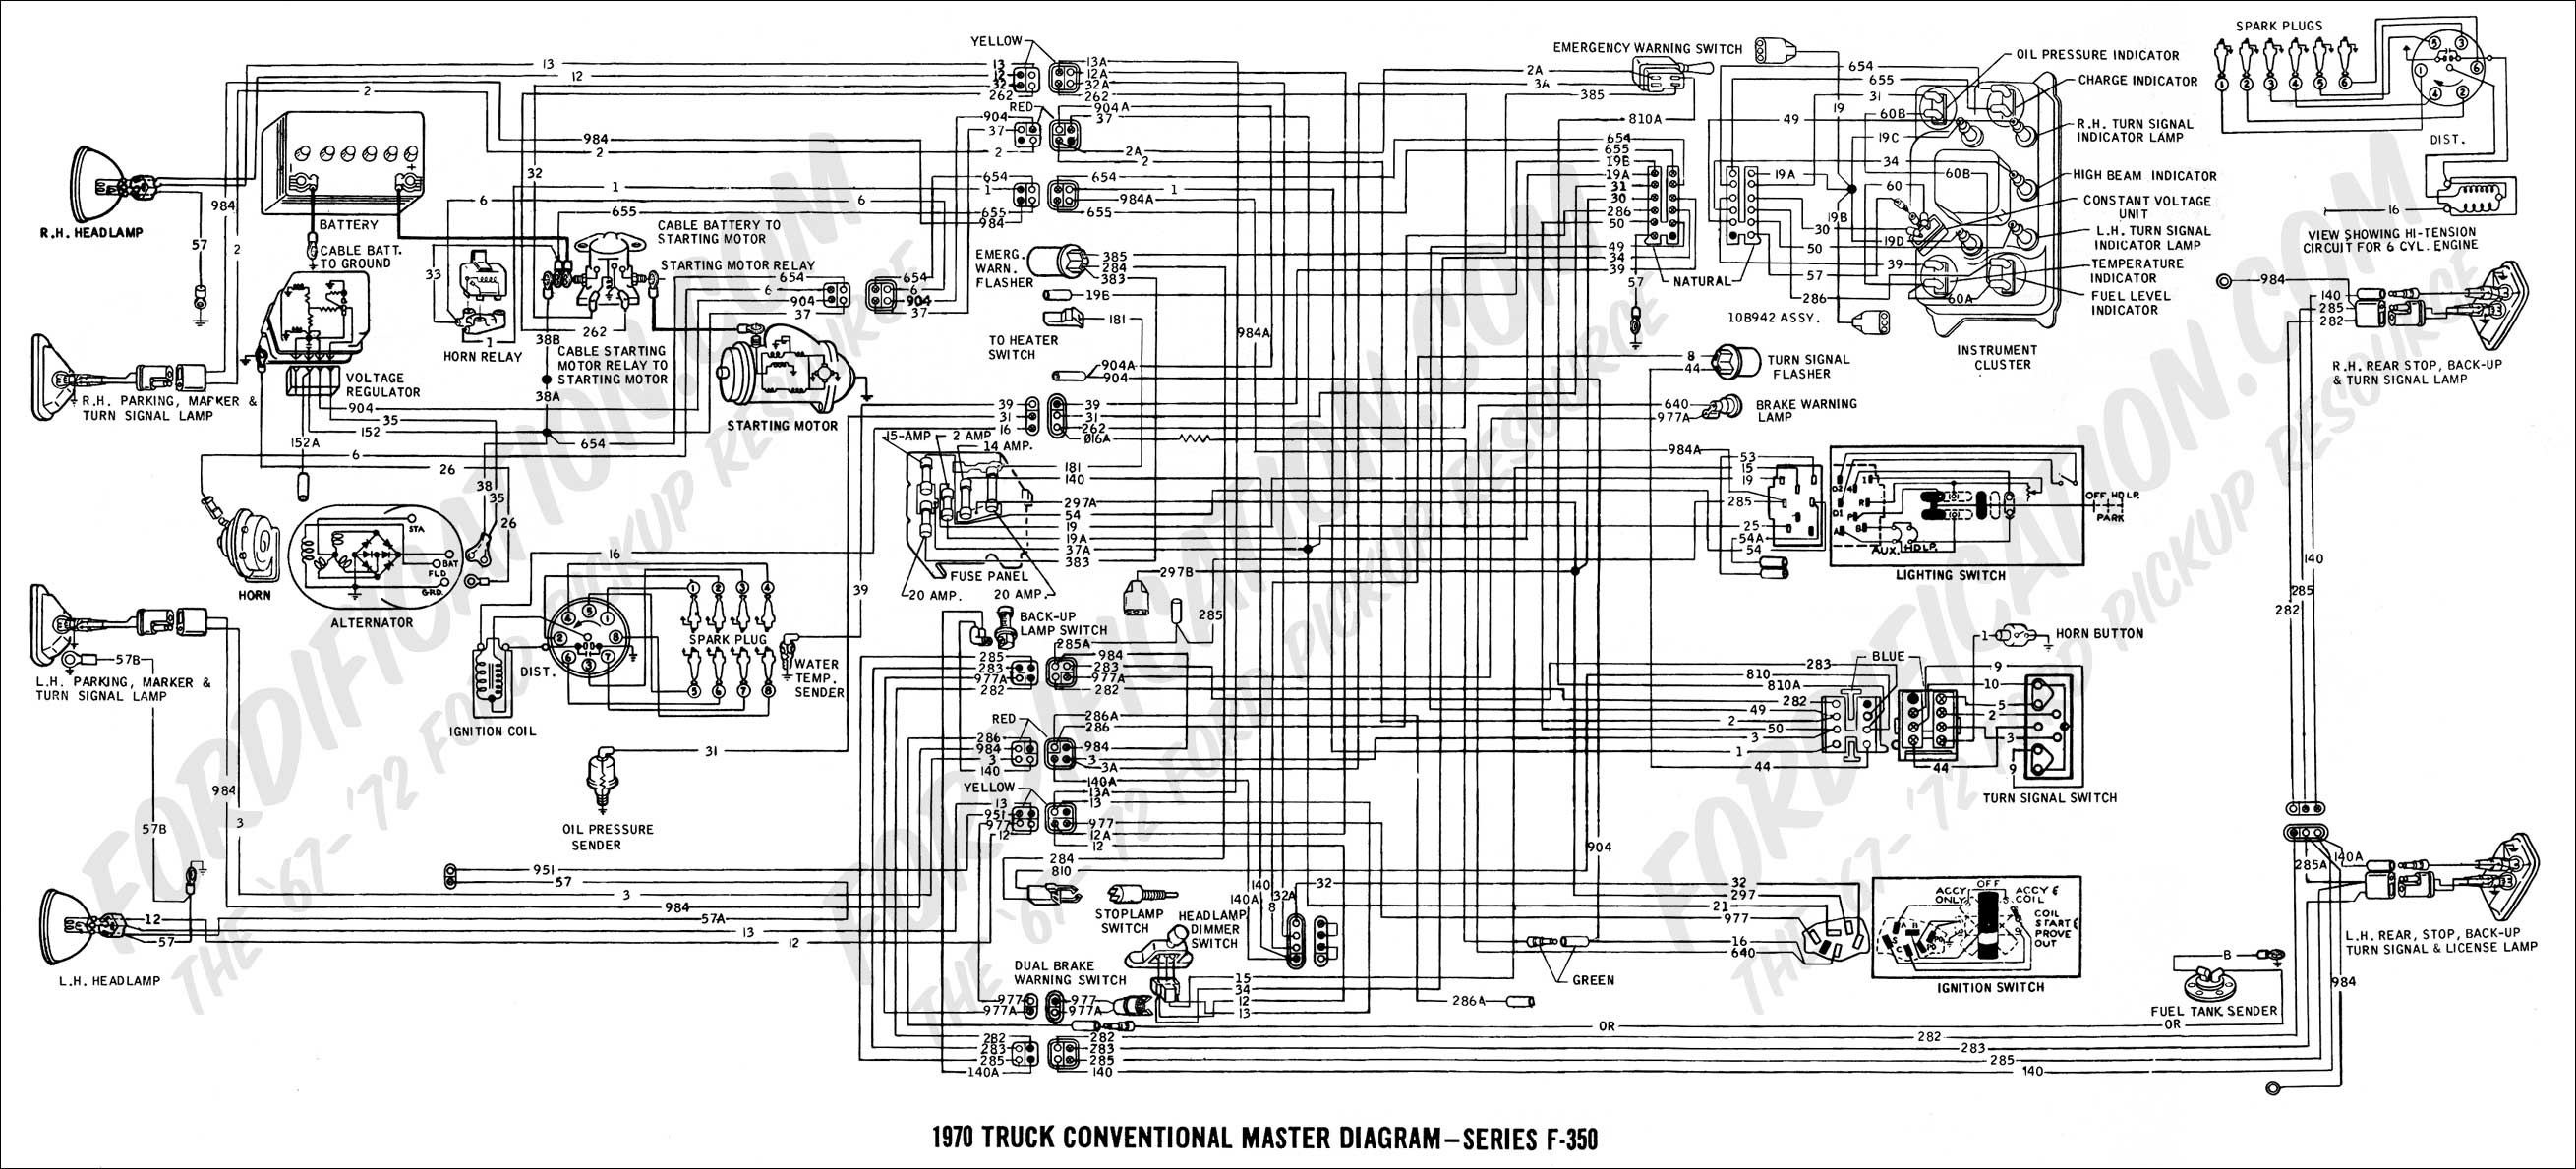 international 4200 vt365 wiring diagram international 2006 ford f 350 wire diagram 2006 wiring diagrams on international 4200 vt365 wiring diagram